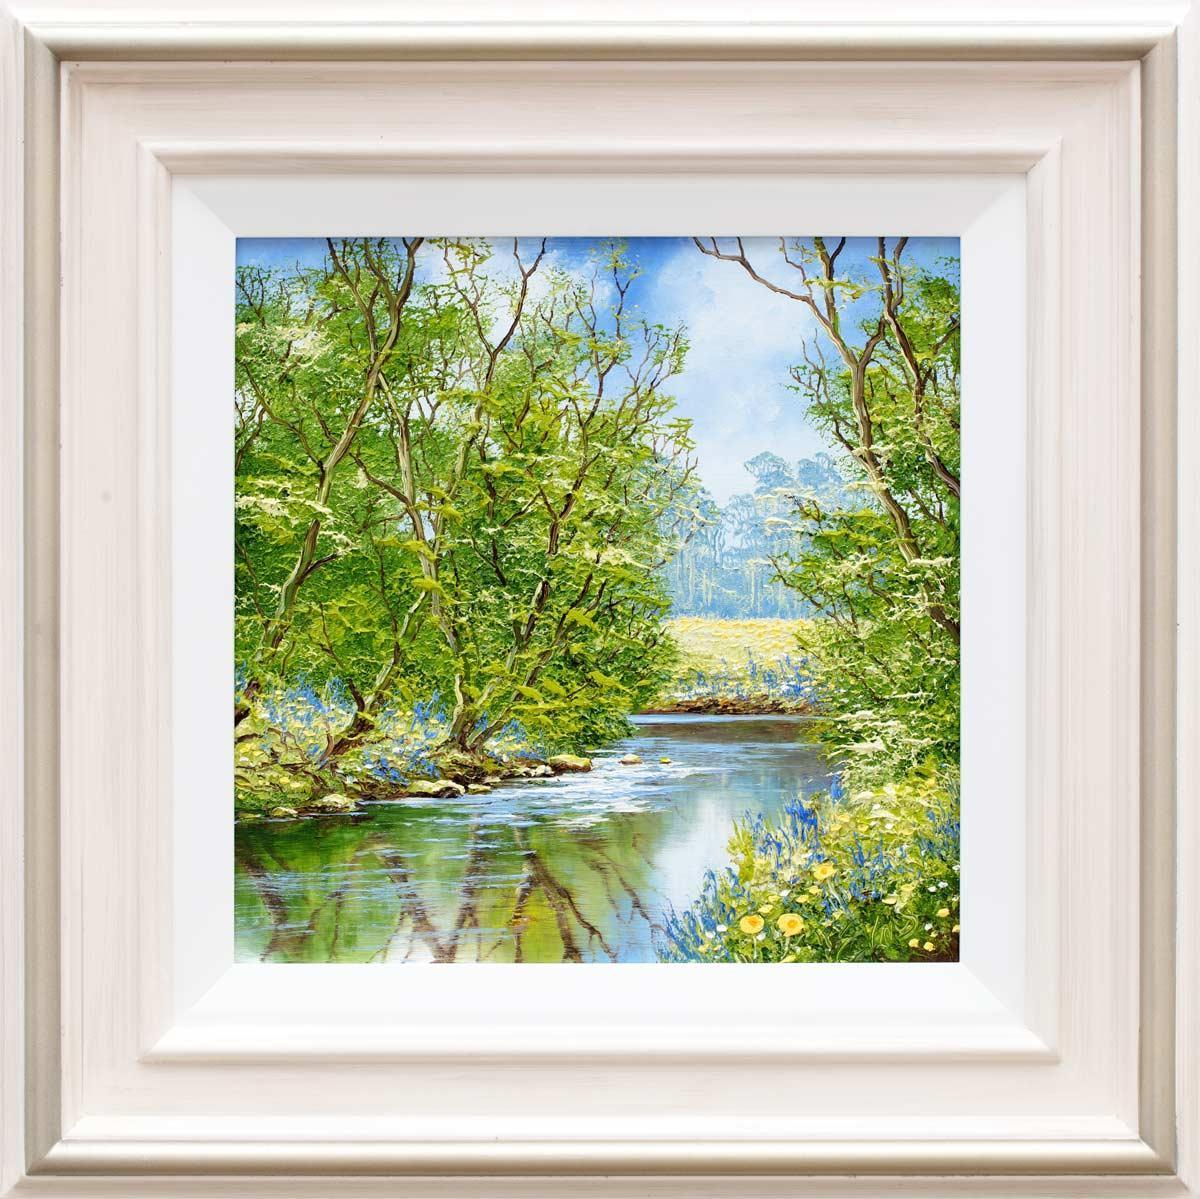 A Day in Spring - Original Terry Evans Framed